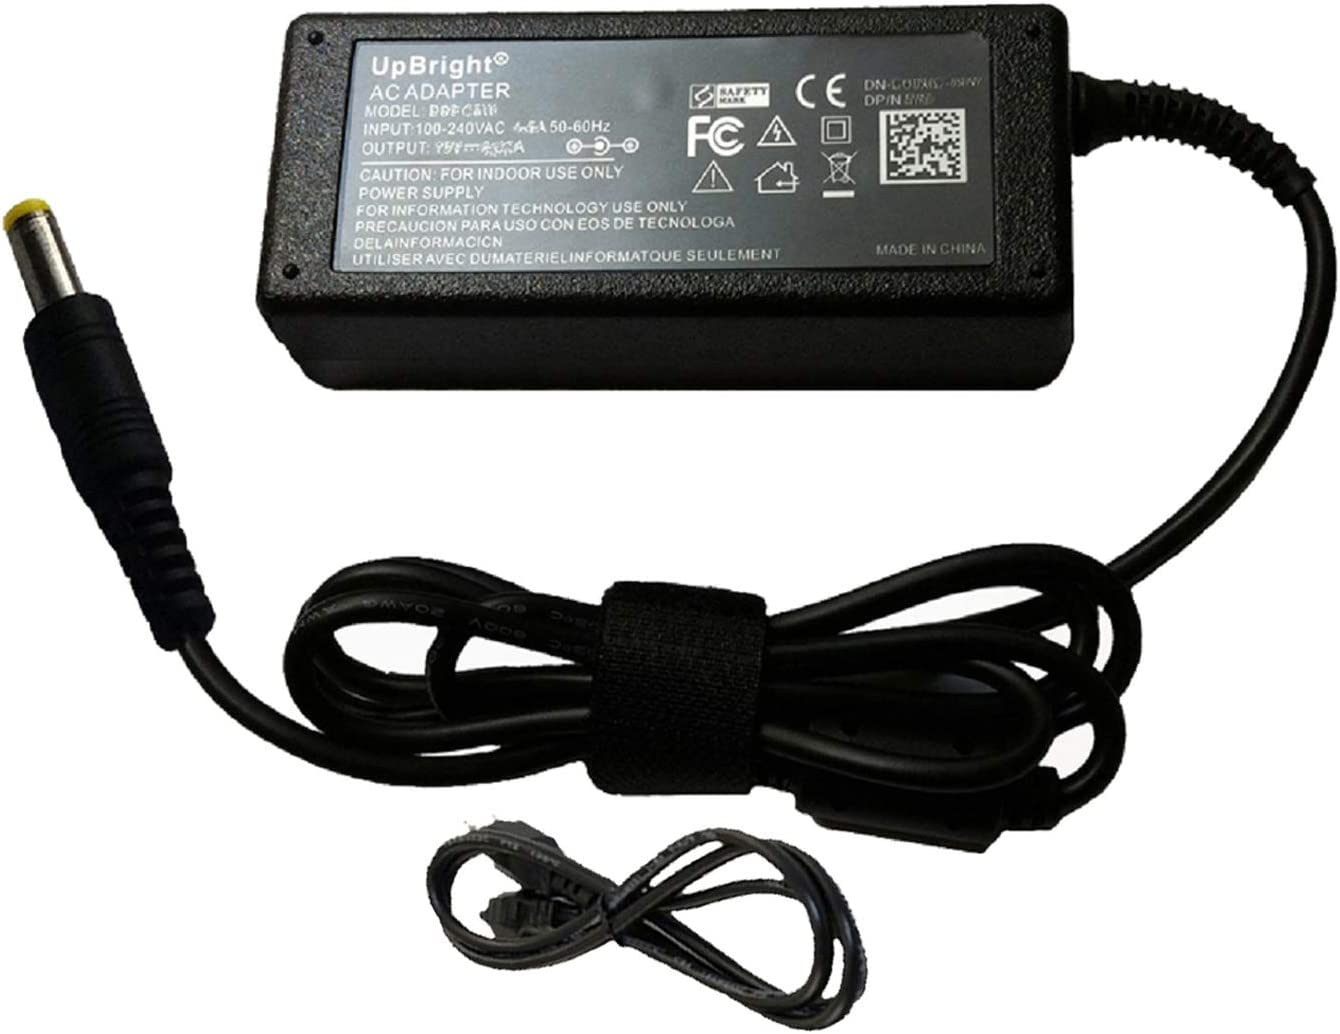 UPBRIGHT 19V AC/DC Adapter Replacement for Asus ADP-40KD BB ADP-40KDBB ADP40KD BB Laptop Notebook PC 19 V 2.1 A 19VDC 2.1A 40W LPS Power Supply Cord Cable Battery Charger (Note: NOT Fit Acer Laptop)